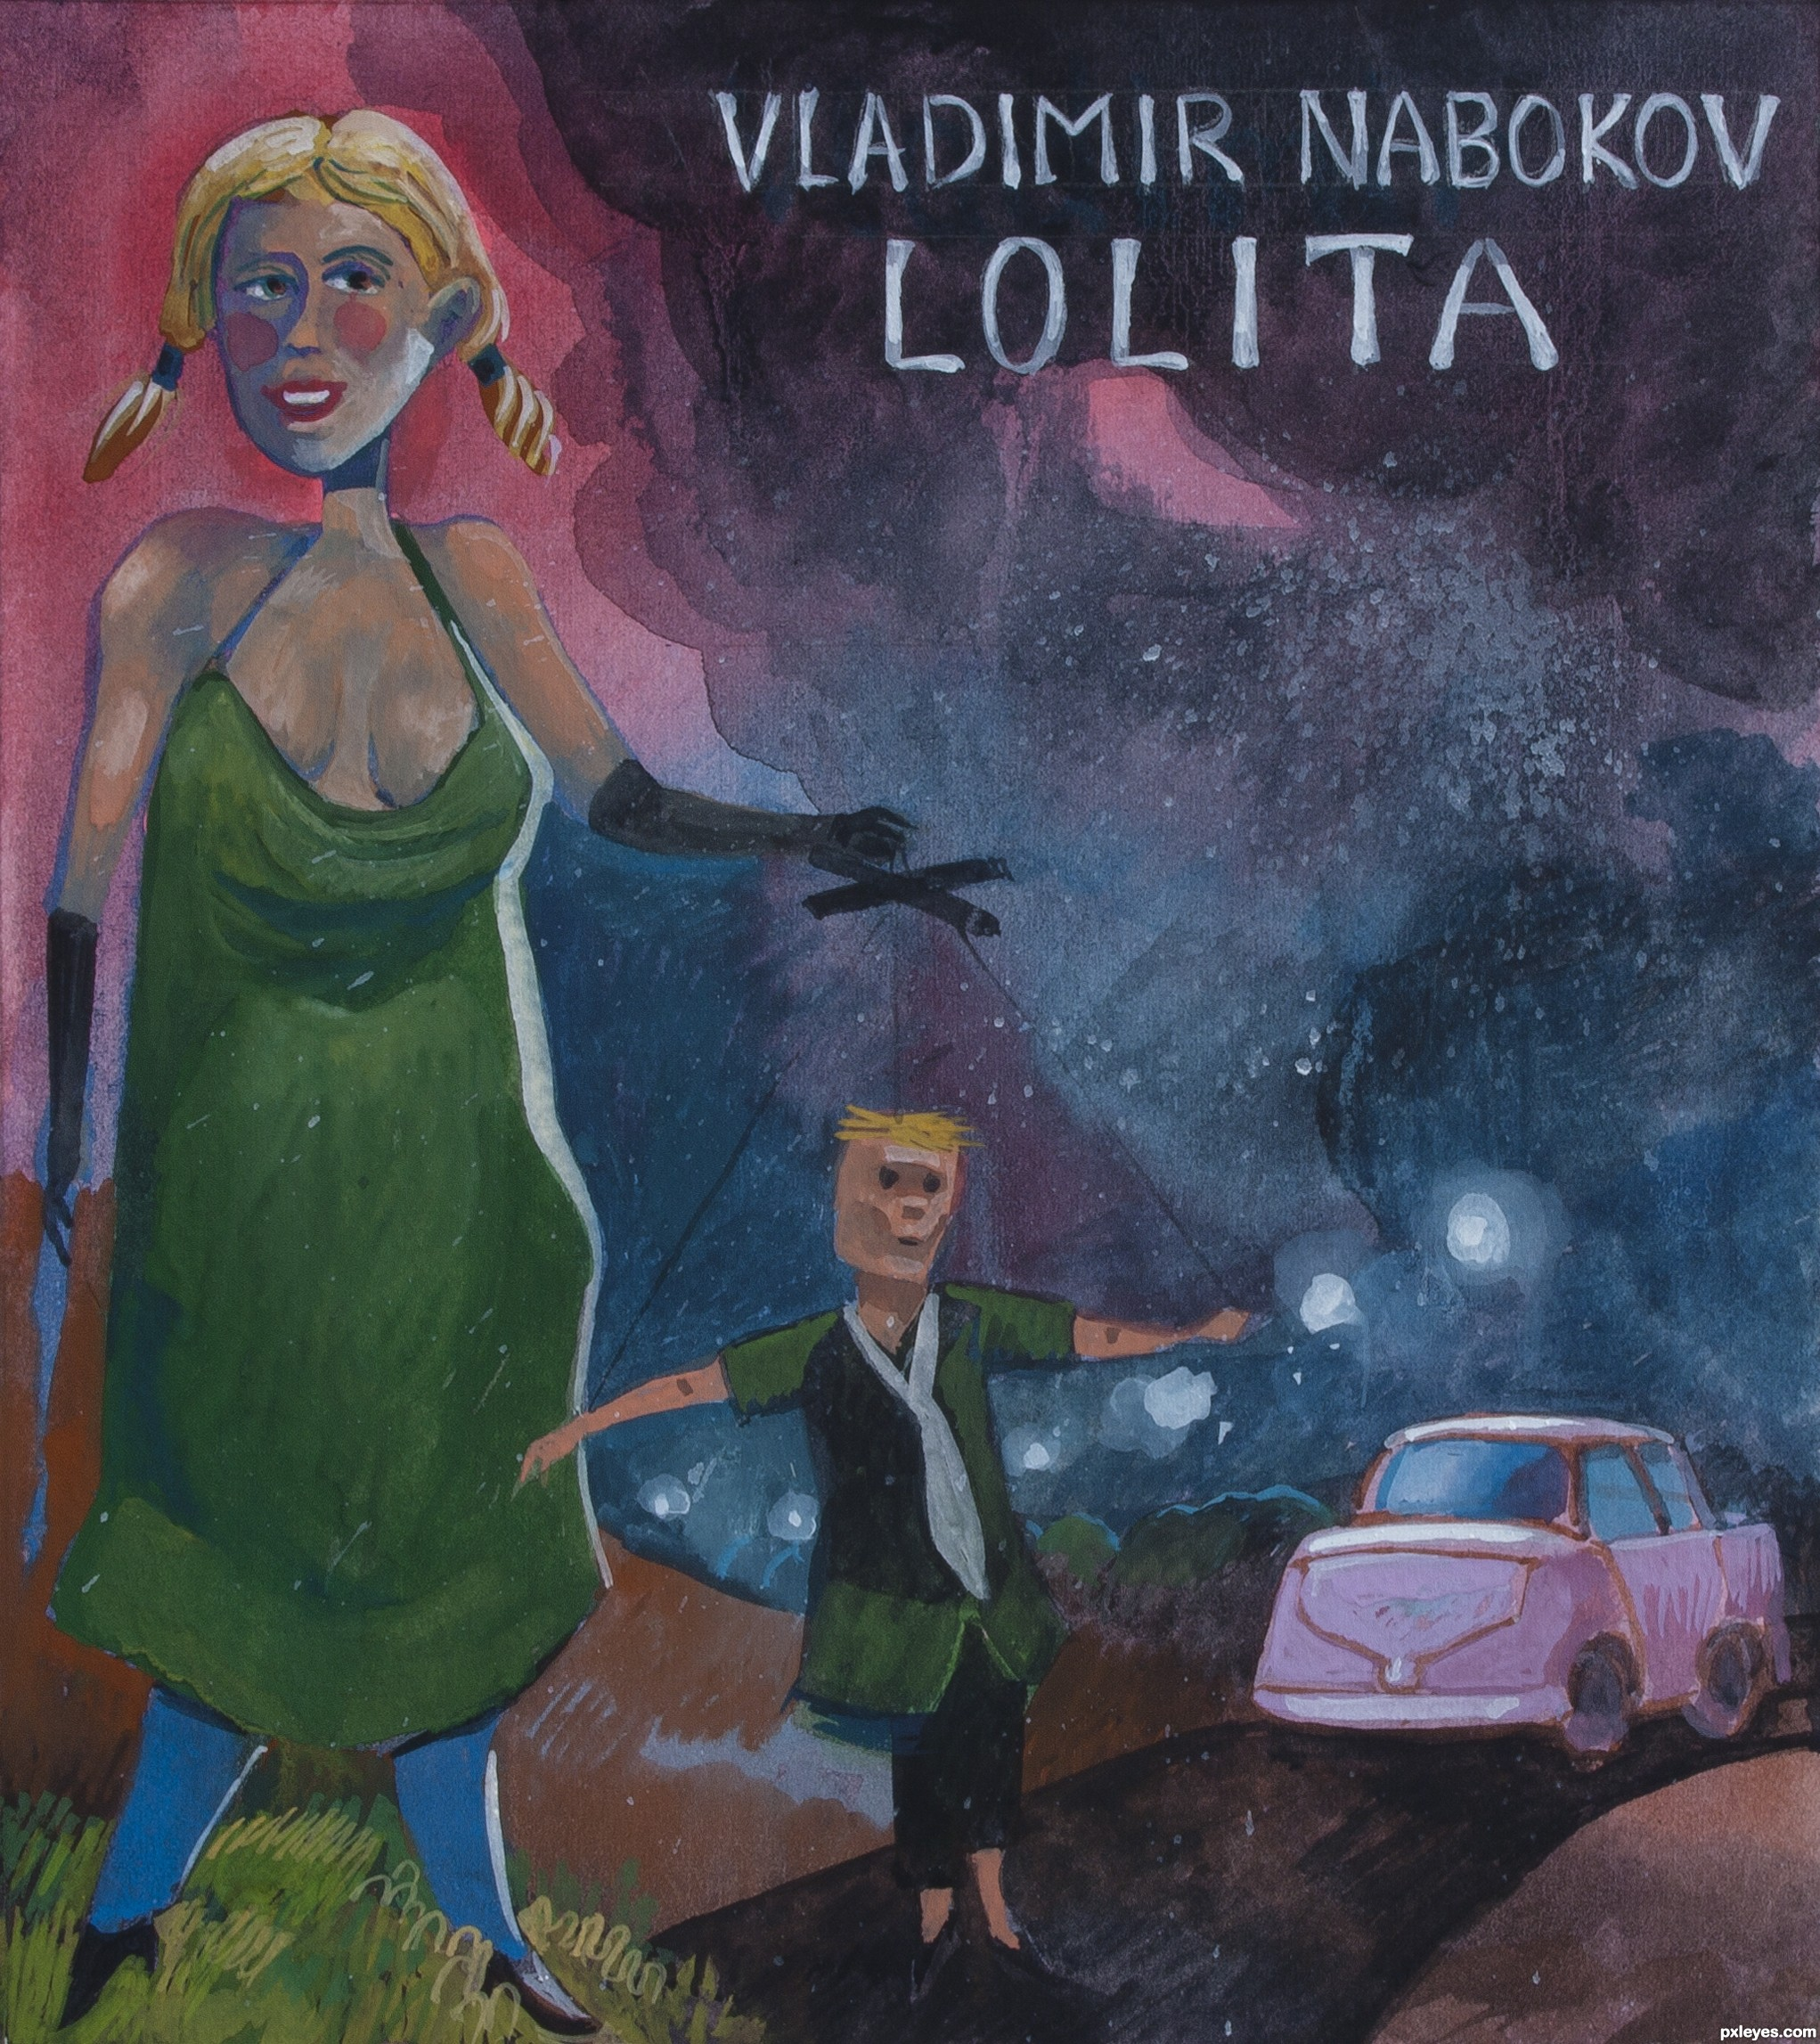 humberts illogical narration in lolita a novel by vladimir nabokov Vladimir nabokov,  awe and exhiliration—along with heartbreak and mordant wit—abound in lolita, nabokov's most famous and controversial novel, which tells the .